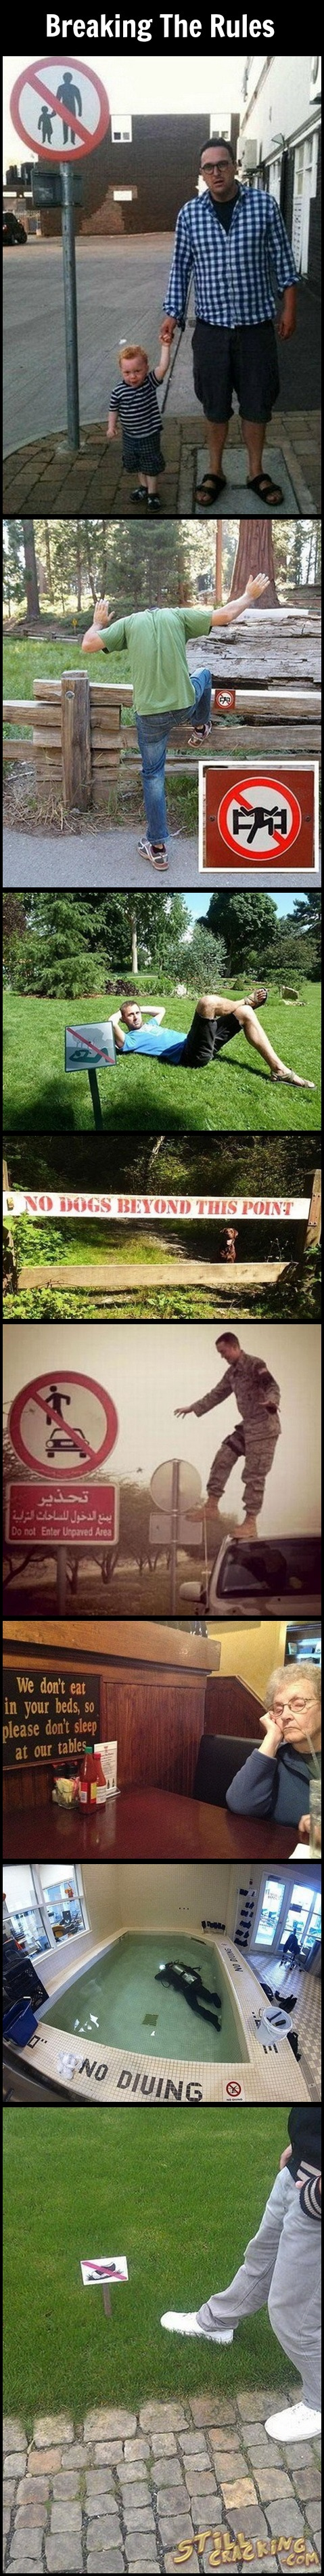 funny pics, breaking the rules